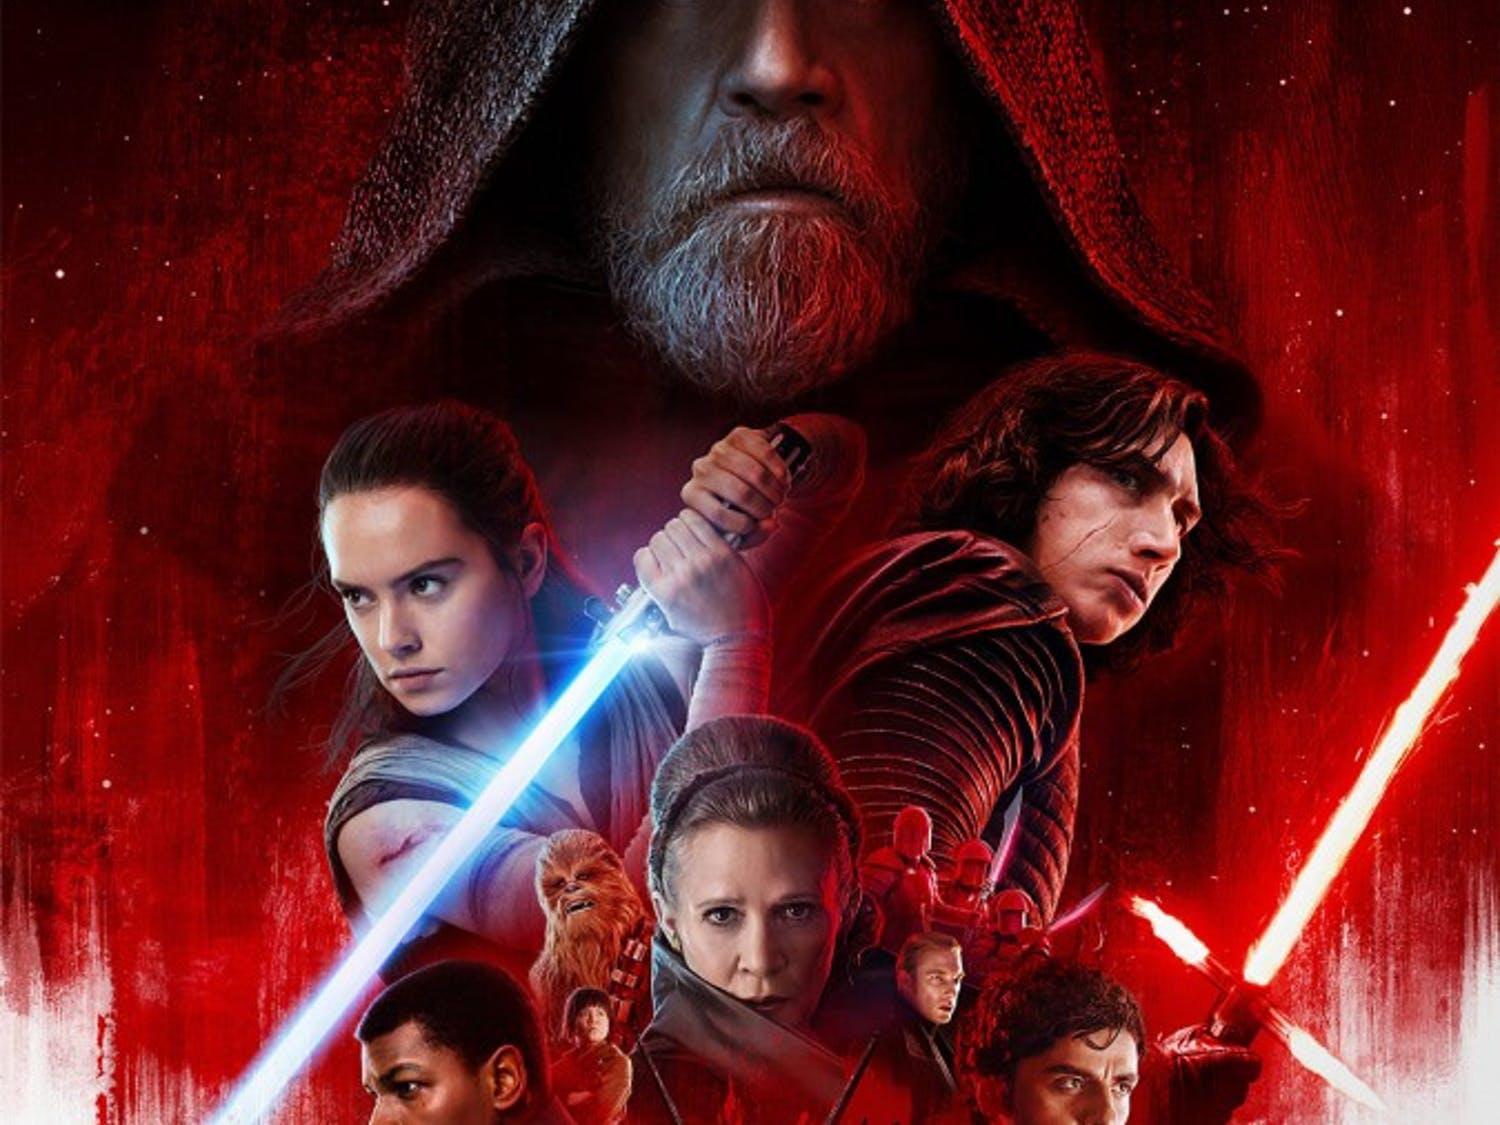 """""""Star Wars: The Last Jedi"""" will be the biggest film of the year, despite losing Carrie Fisher before the release. December also brings us a few gems along with Spielberg's latest dad-fare."""